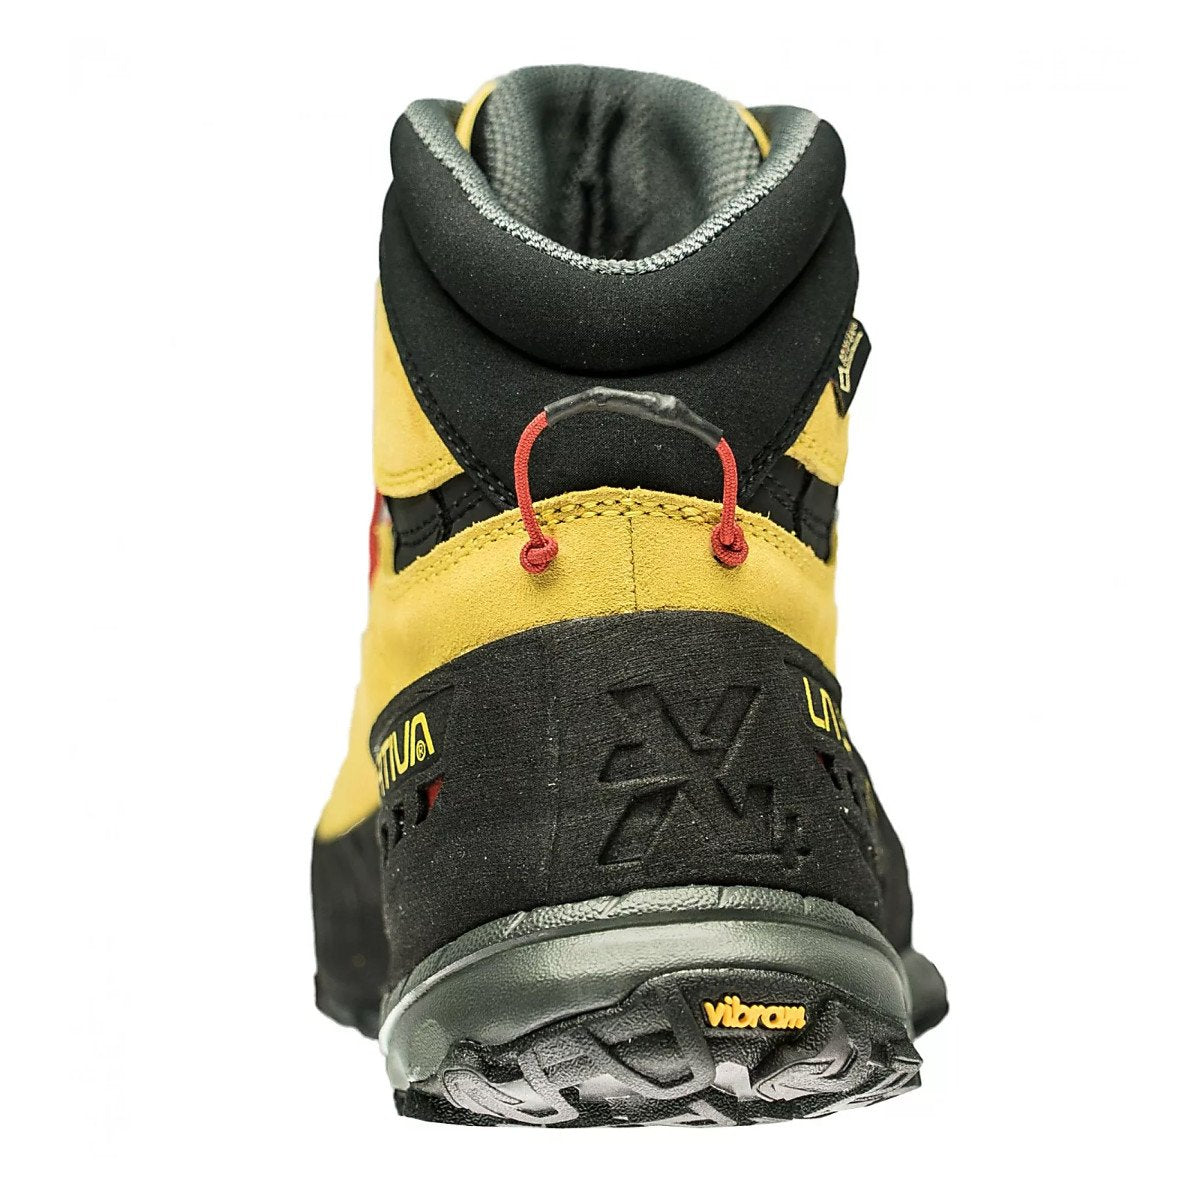 La Sportiva TX4 Mid GTX approach shoe, rear view showing the heel design